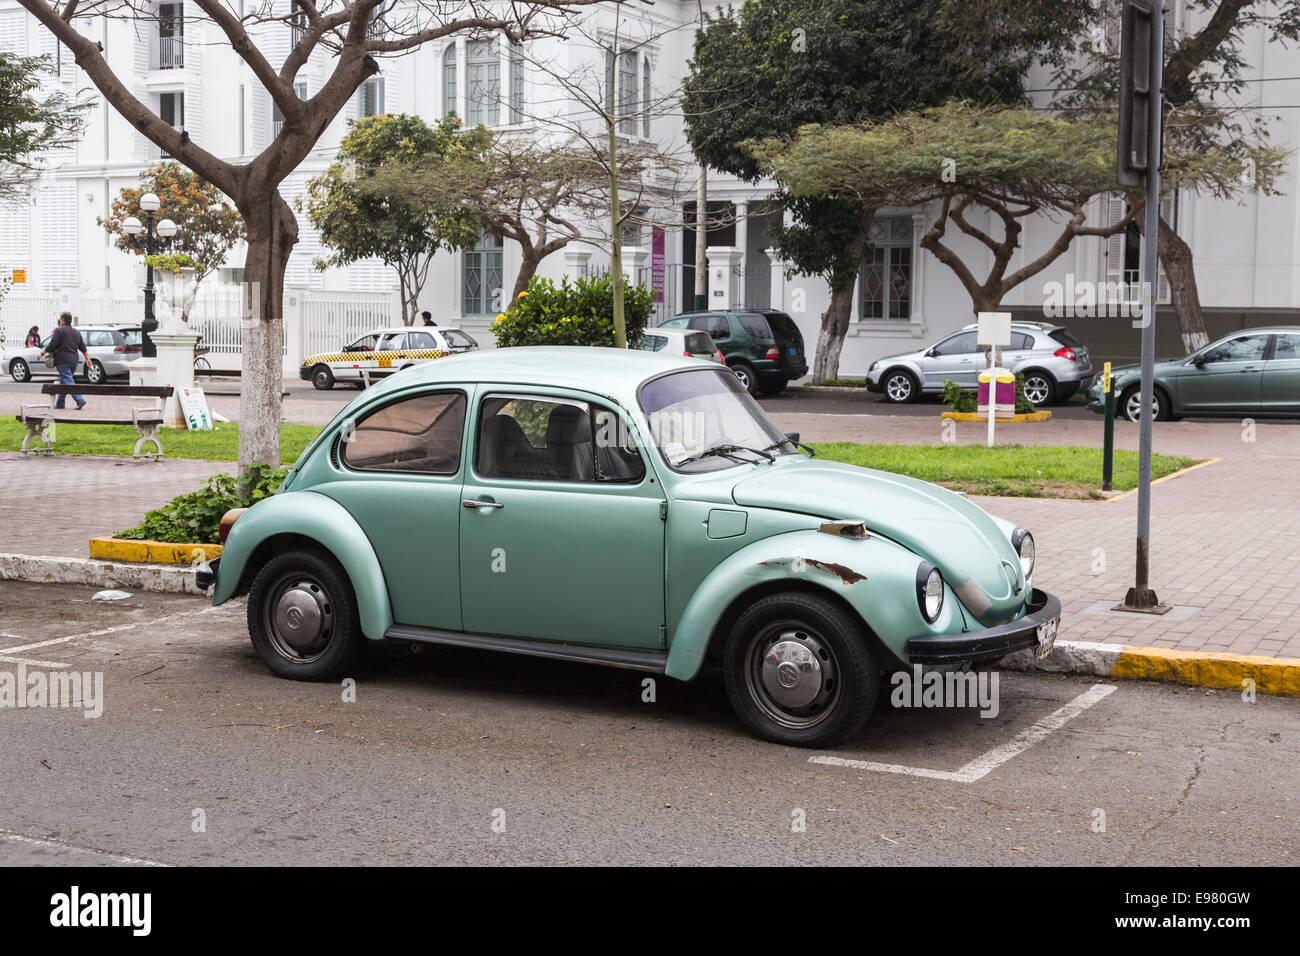 Green Volkswagen Beetle with damaged and rusty wheel arch in Barranco, Lima, Peru Stock Photo